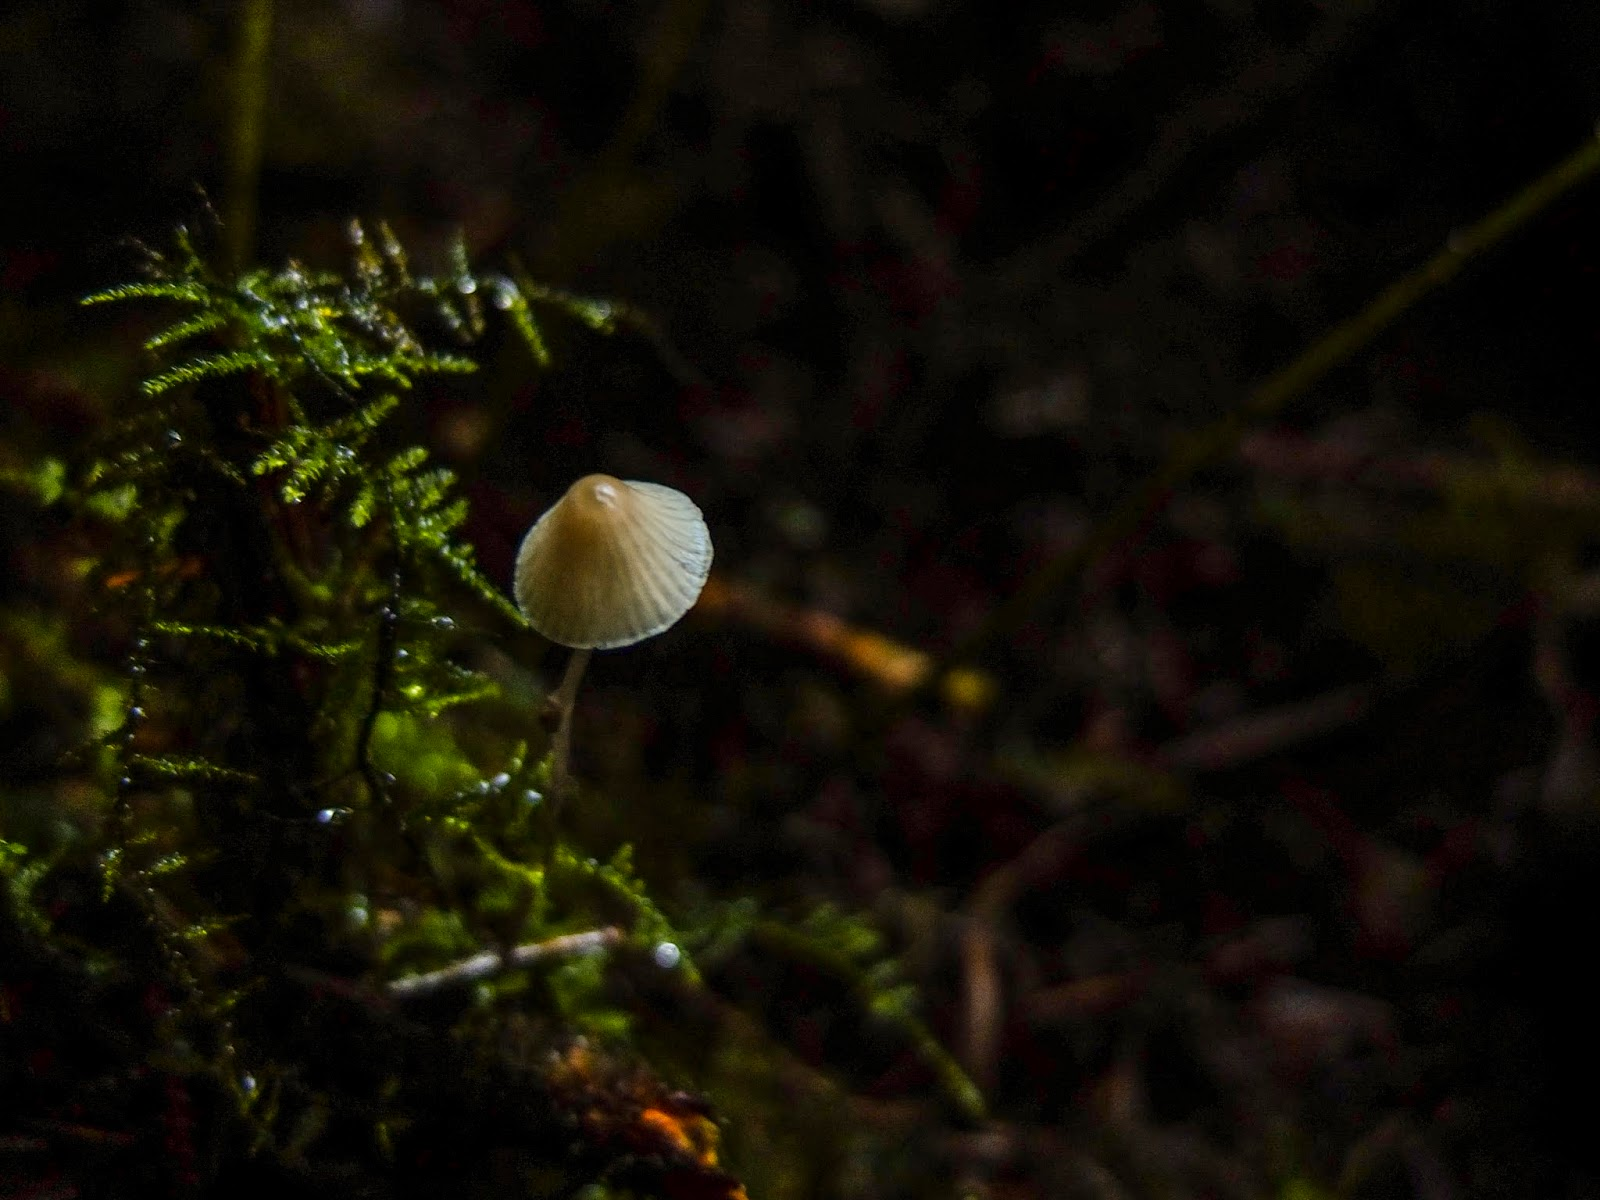 A tiny mushroom growing on a forest floor among moss.